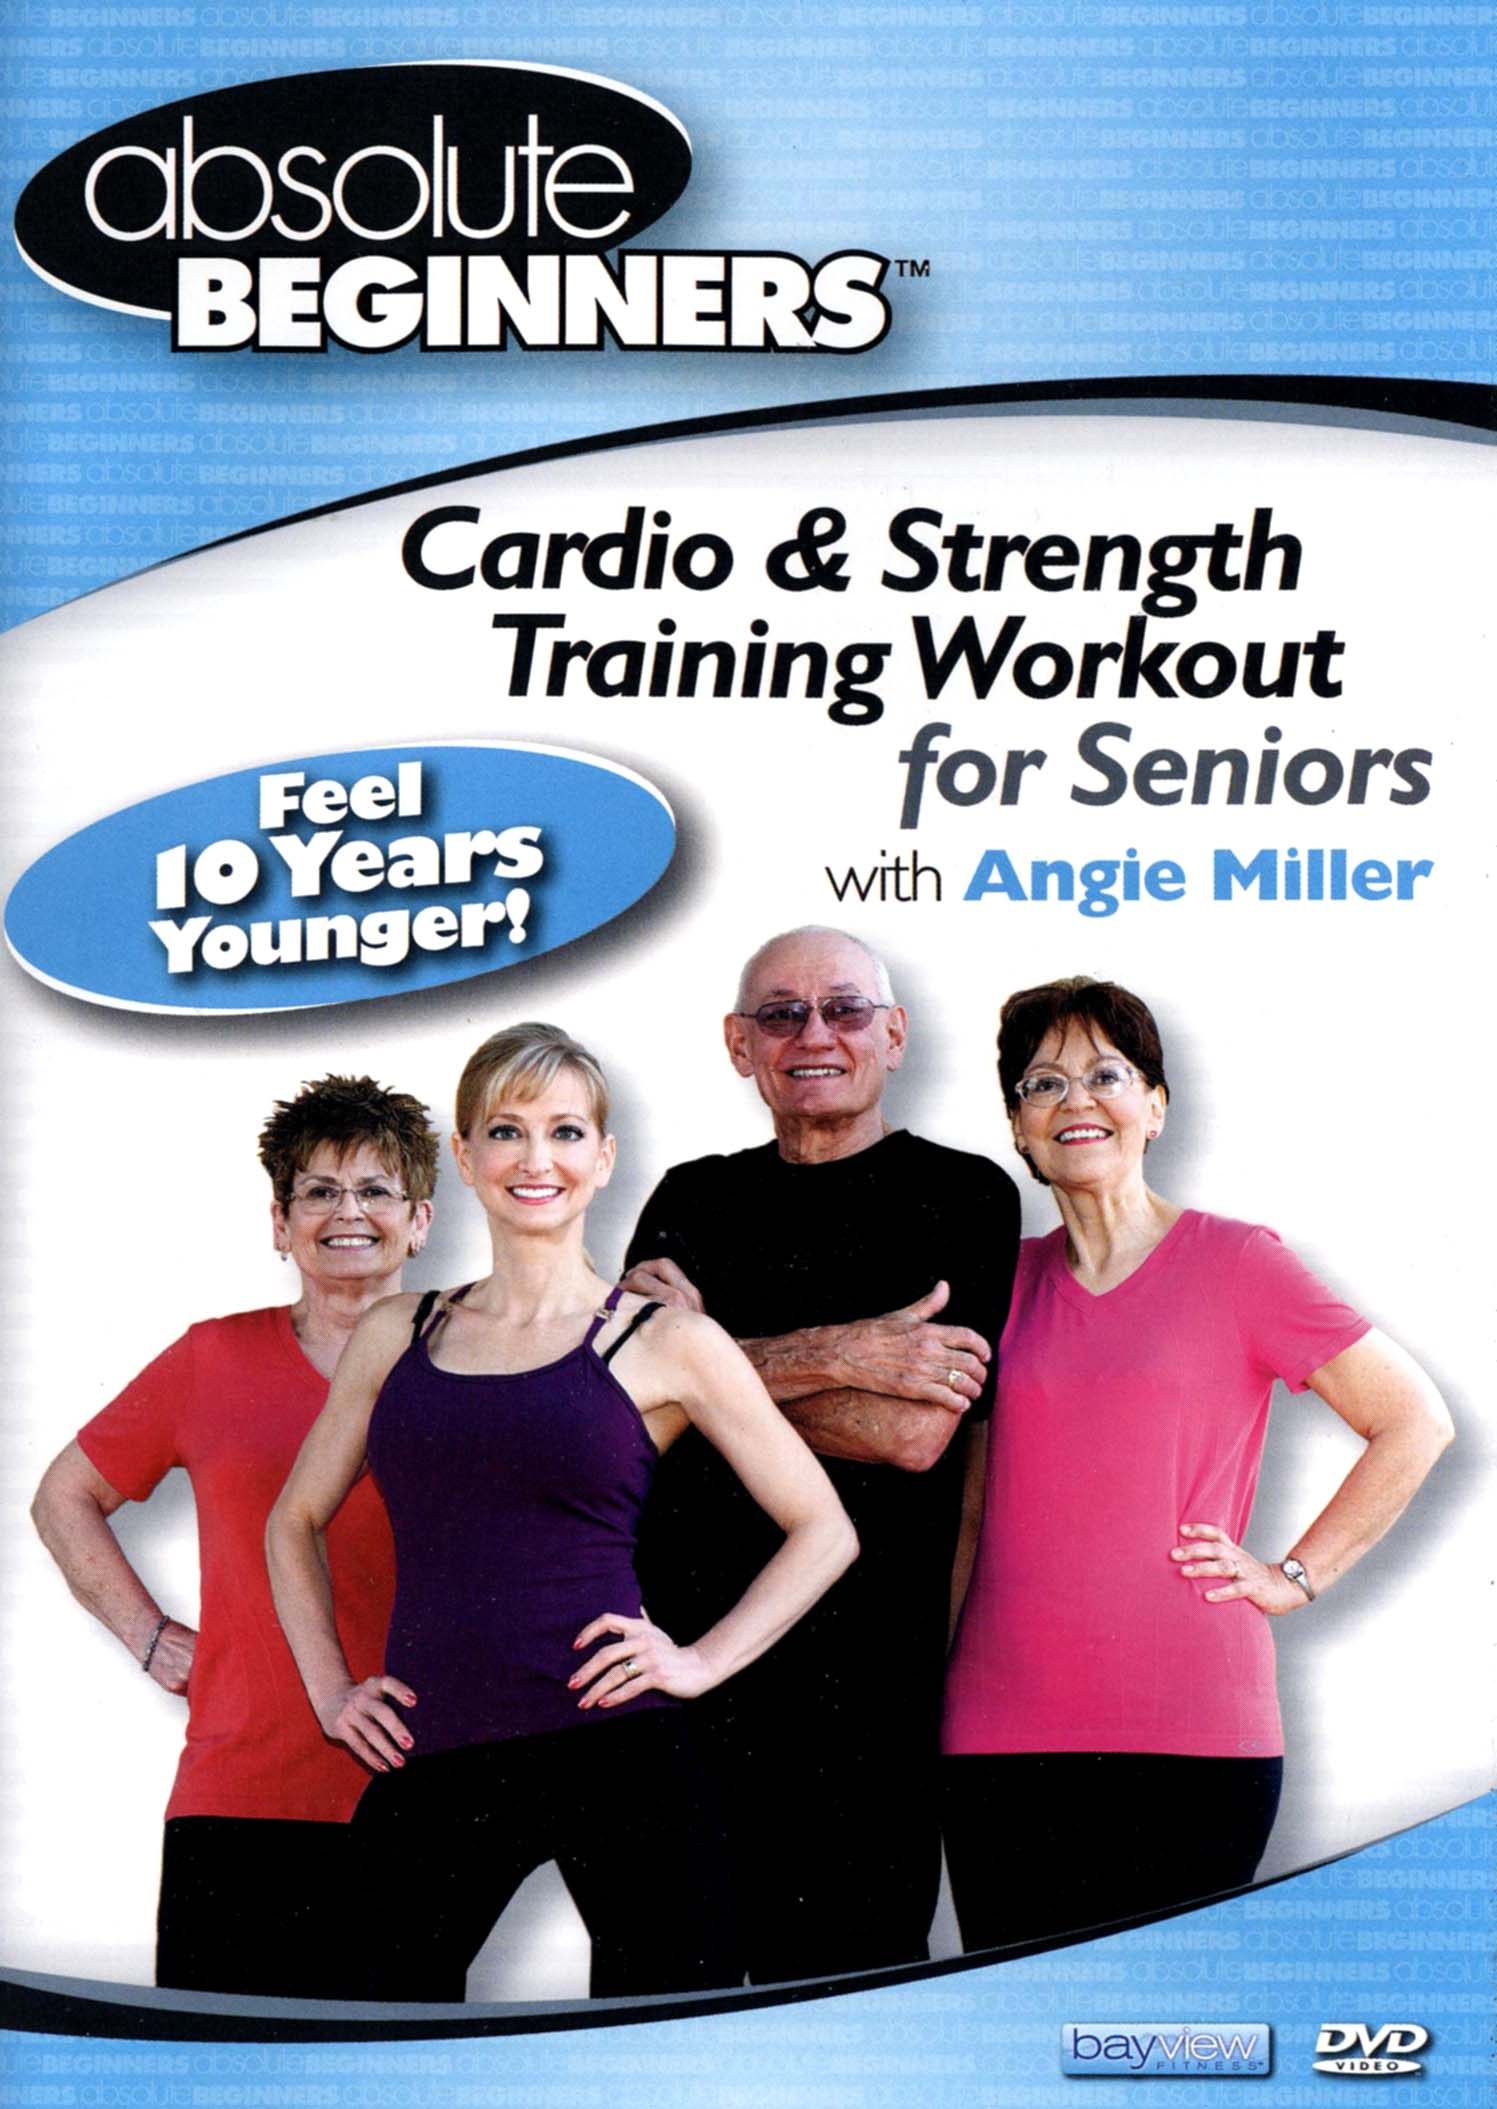 Absolute Beginners: Cardio & Strength Training Workout for Seniors